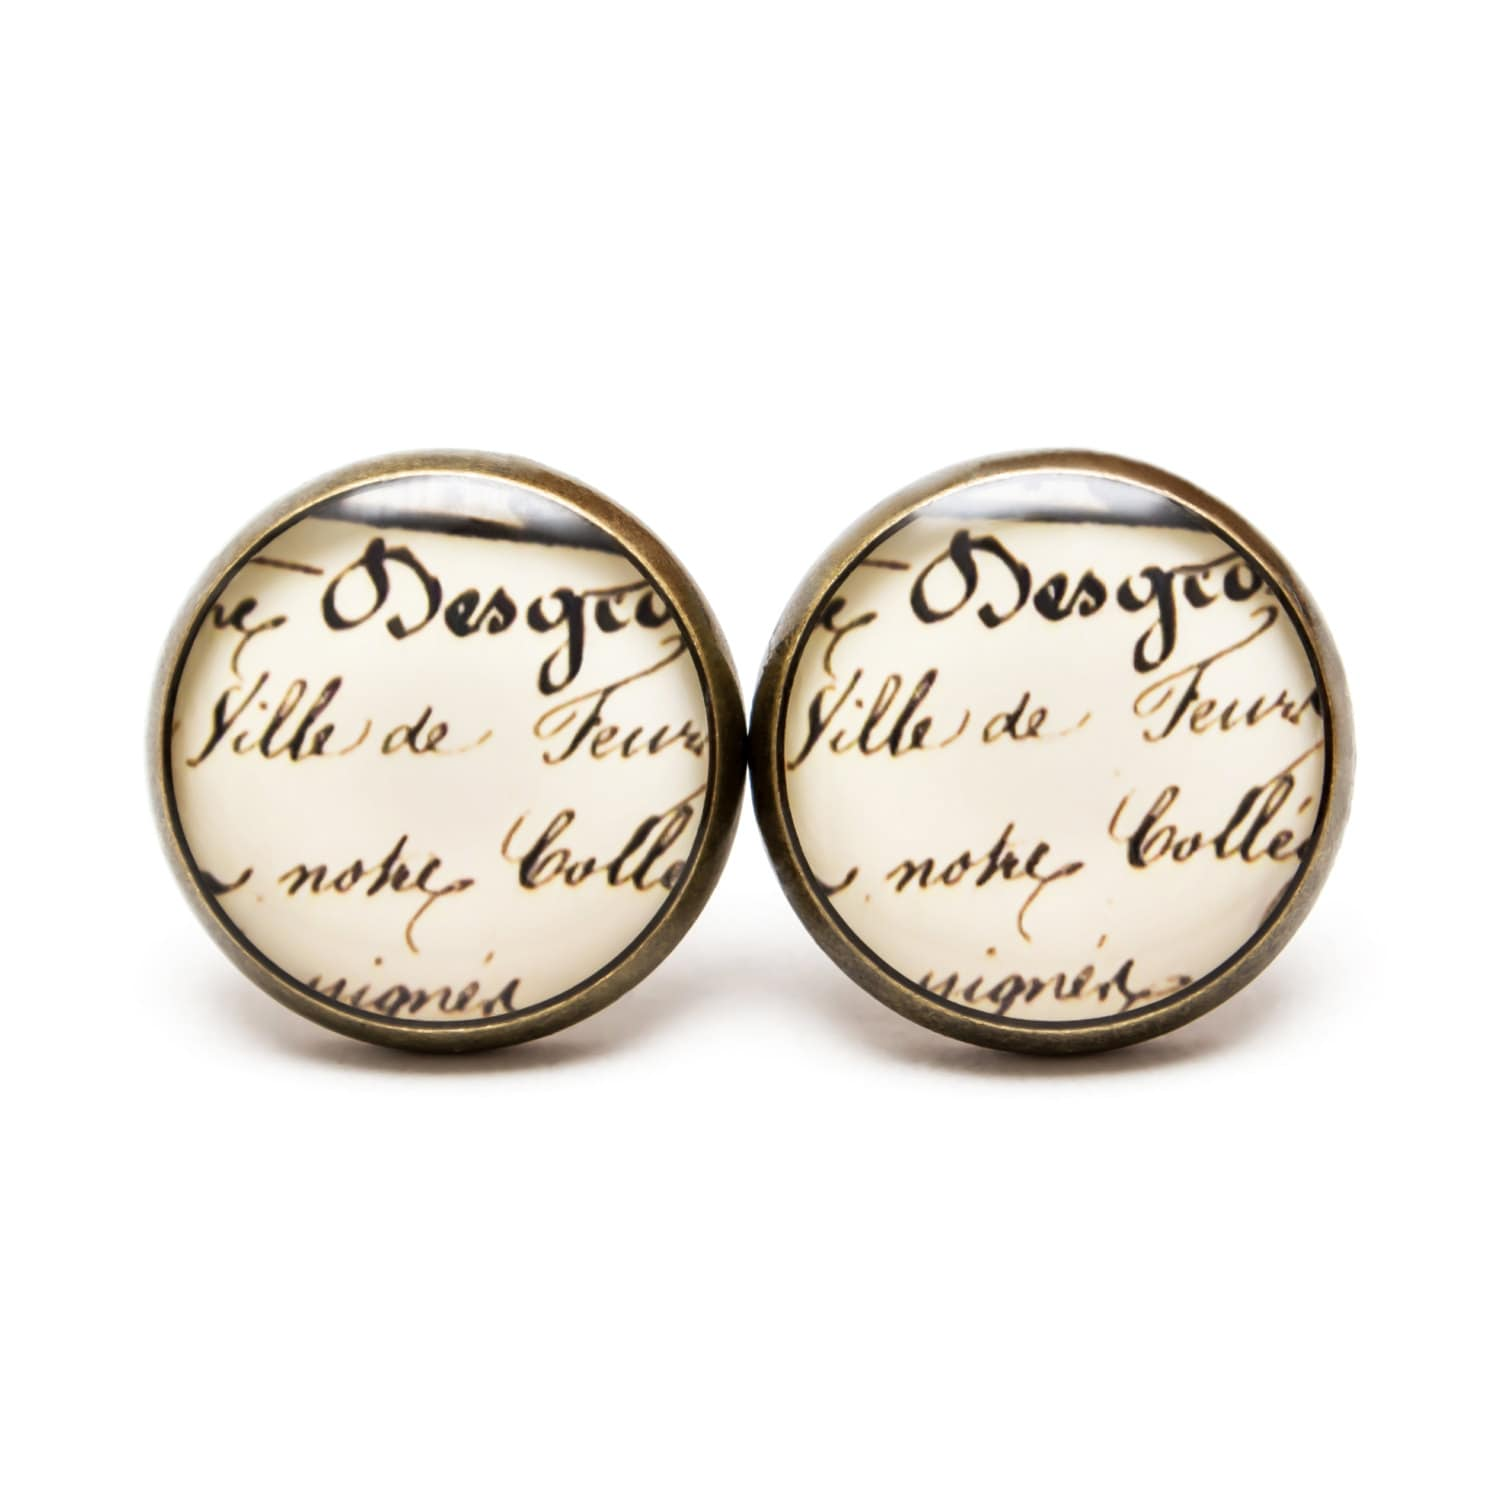 Antique Calligraphy: Vintage Calligraphy Earring Studs Calligraphy Jewelry